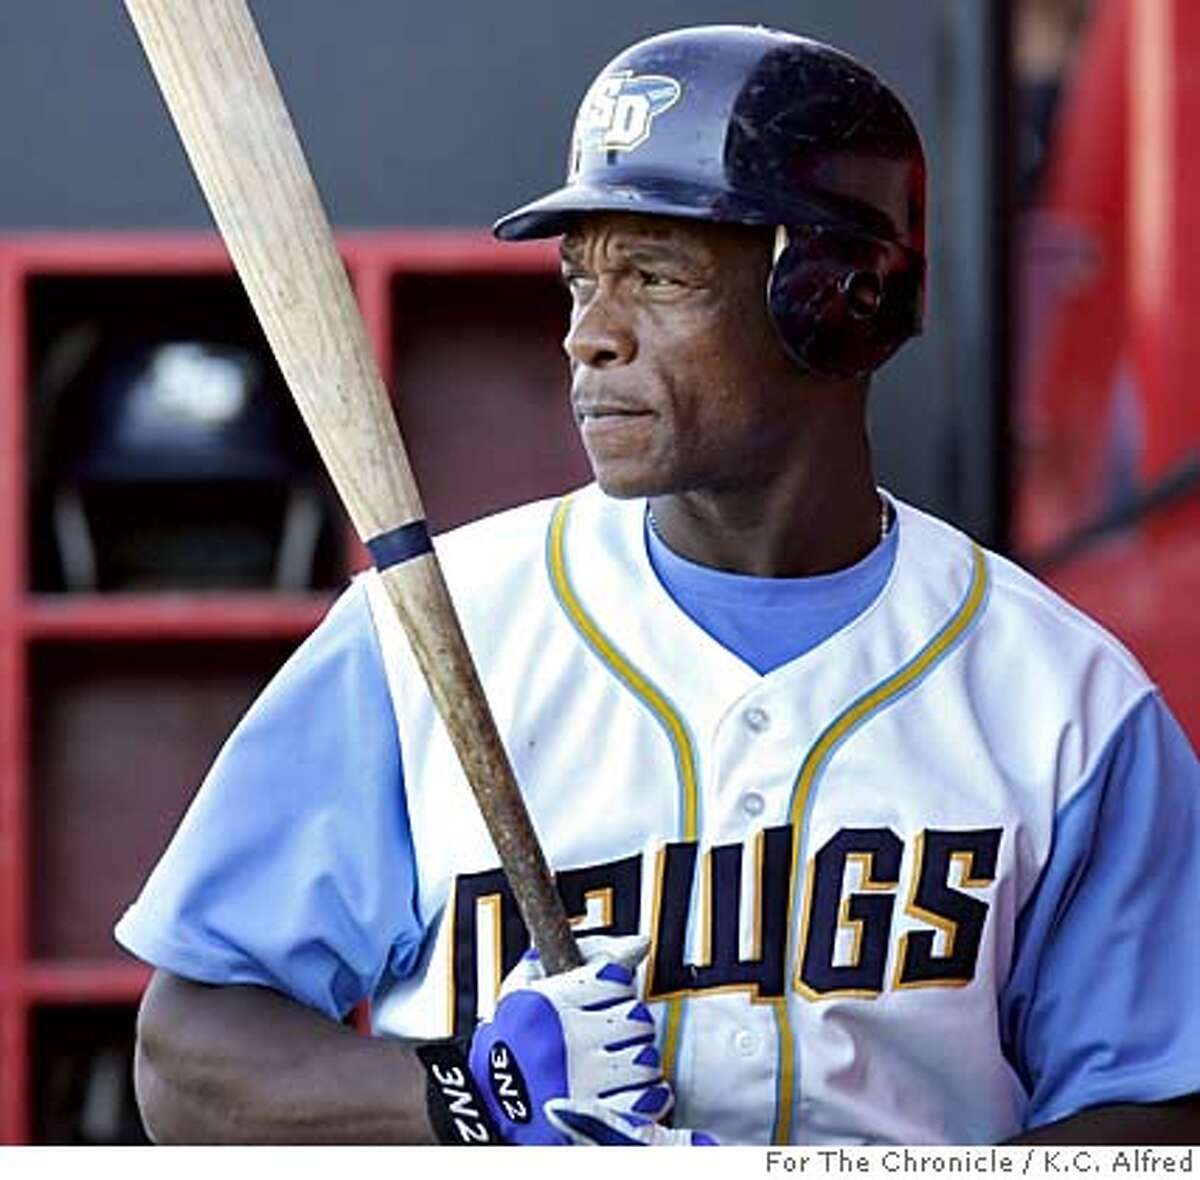 San Diego Surf Dawgs' Rickey Henderson gets ready to bat during a game against Chico on Wednesday, June 29, 2005. After 25 years in the major leagues, Henderson is playing in the Golden Baseball League. Photo by K.C. Alfred/For The Chronicle 619-733-9804 kc.alfred@uniontrib.com Ran on: 07-03-2005 Ricky Henderson, 46, is batting .302 and hoping for a fifth go-round with the As. Ran on: 07-03-2005 Ricky Henderson, 46, is batting .302 and hoping for a fifth go-round with the As. Ran on: 07-03-2005 Ran on: 07-03-2005 Ricky Henderson, 46, is batting .302 and hoping for a fifth go-round with the As.